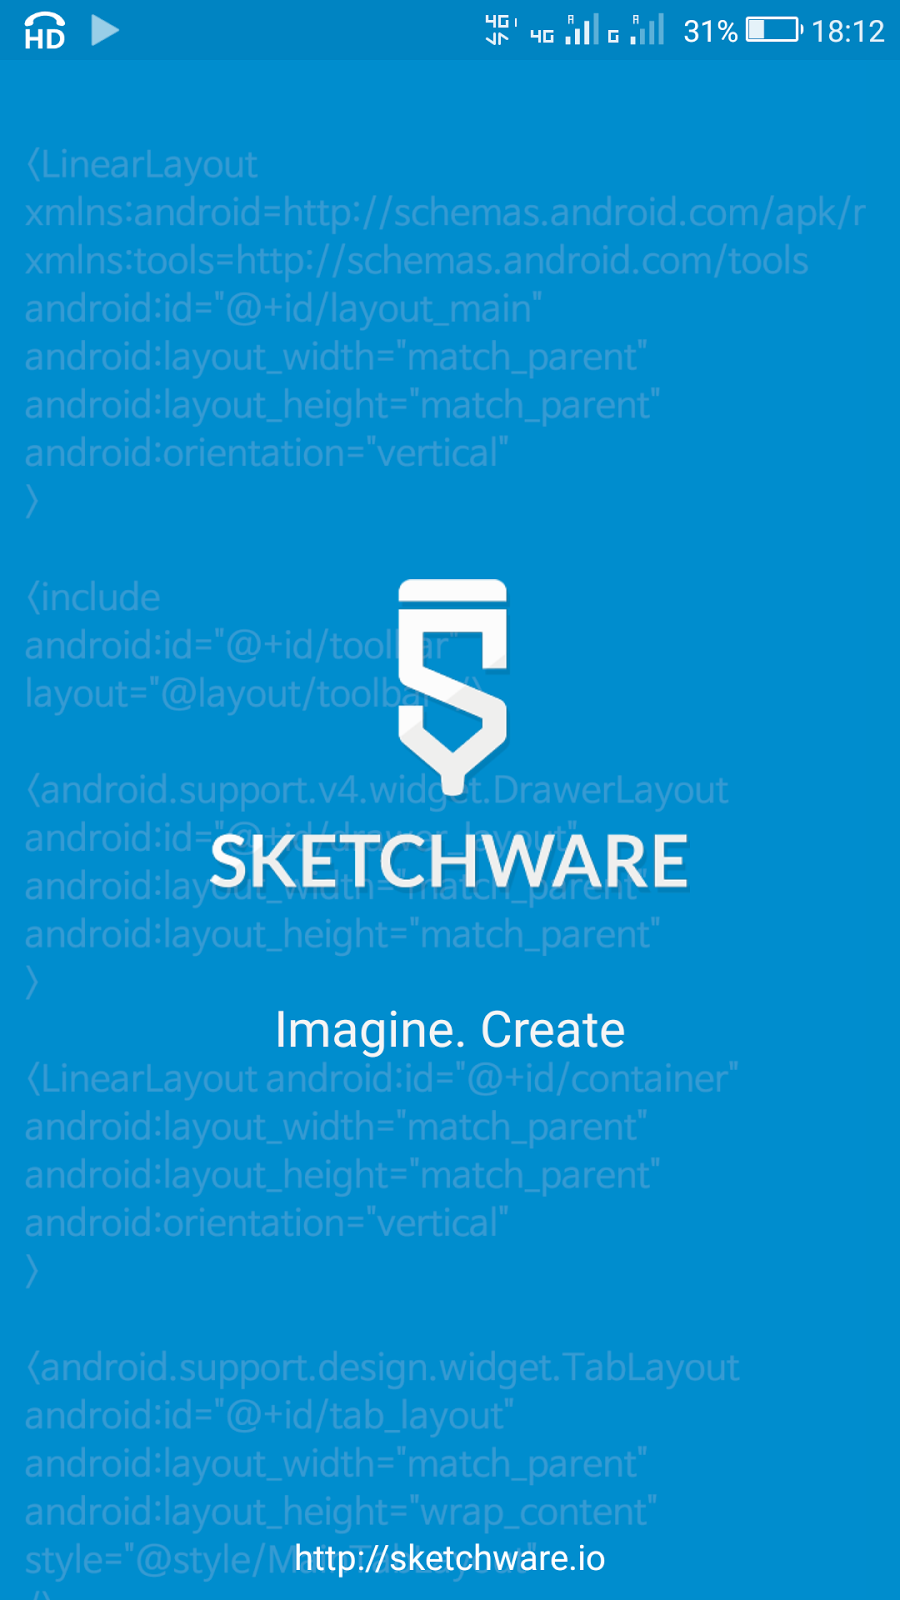 How to create an animation in Sketchware?